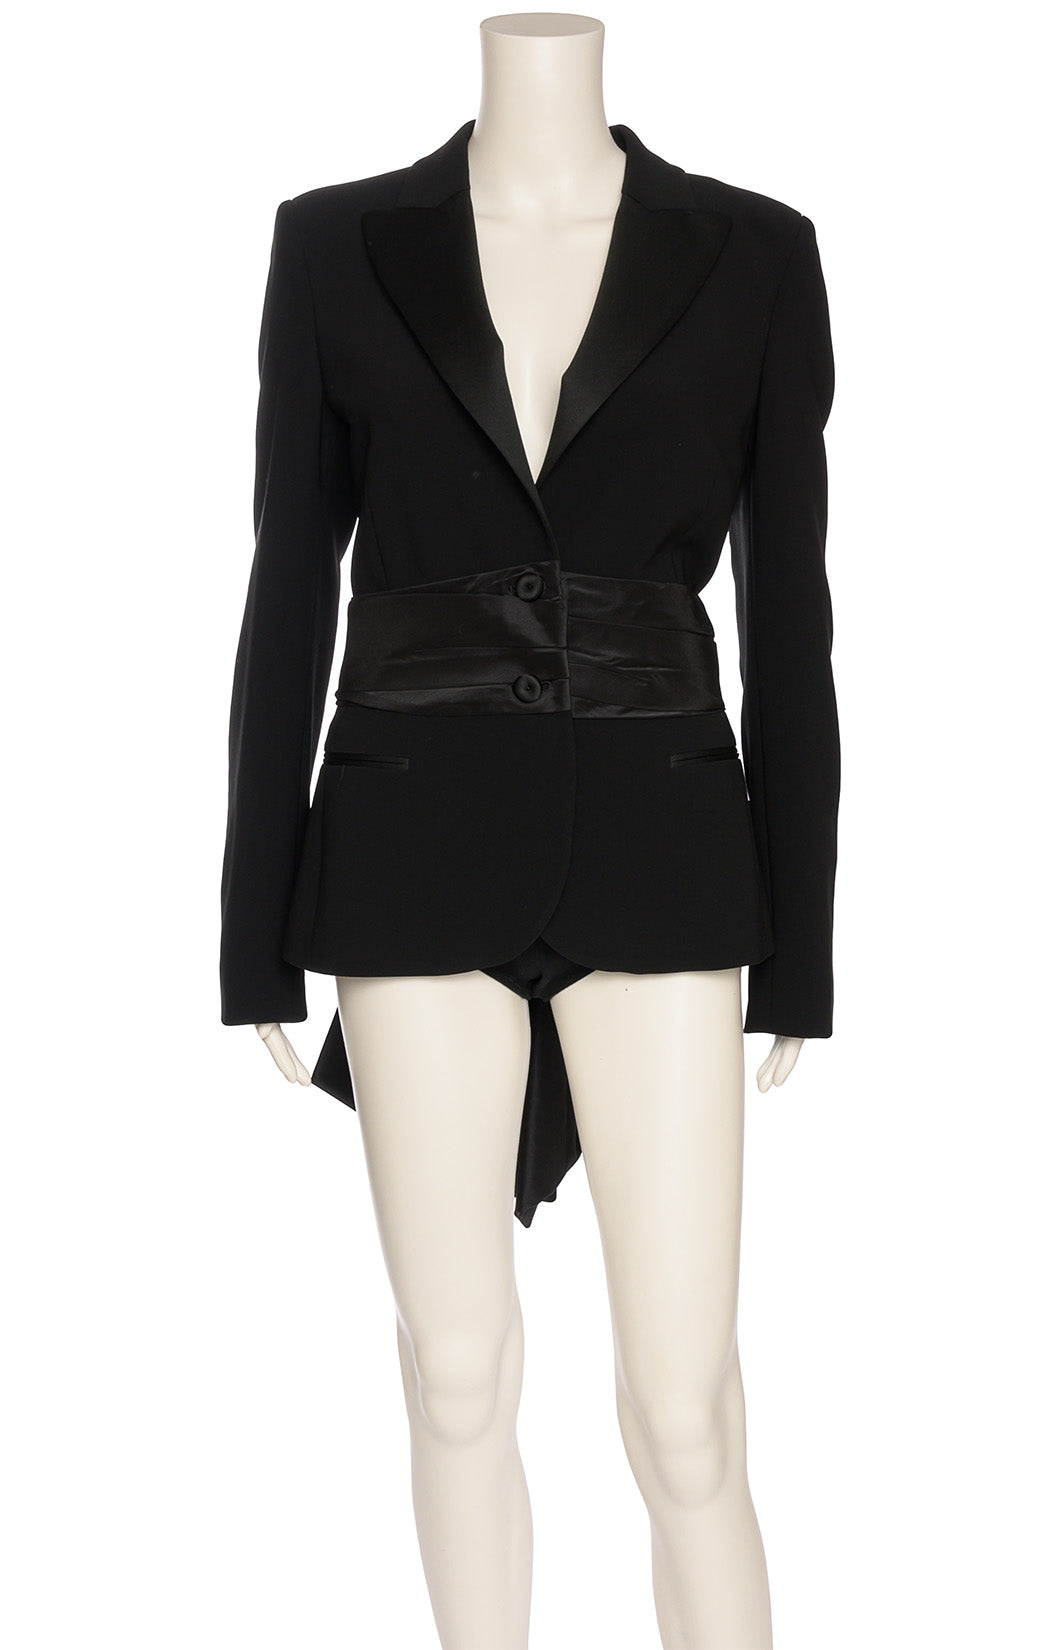 black taffeta jacket with bow